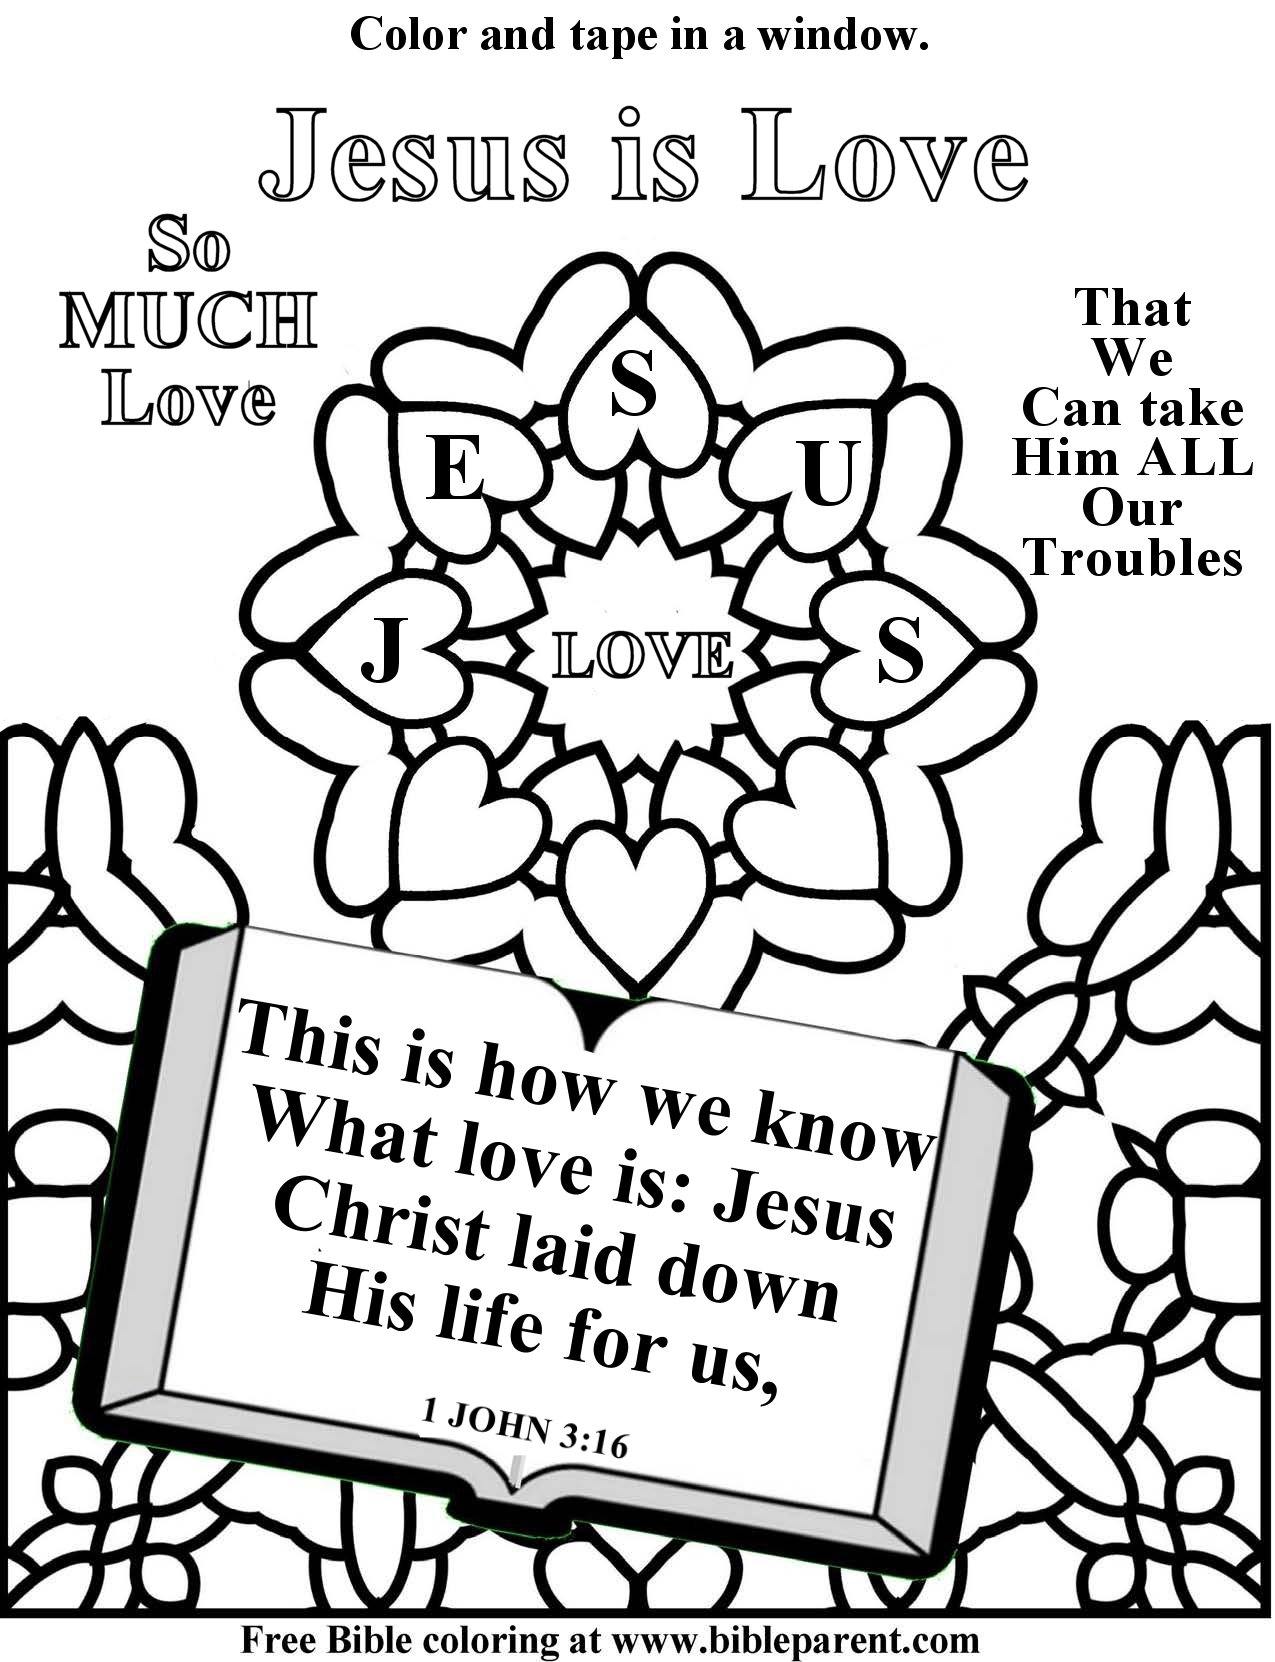 free-bible-coloring-about-salvation-two